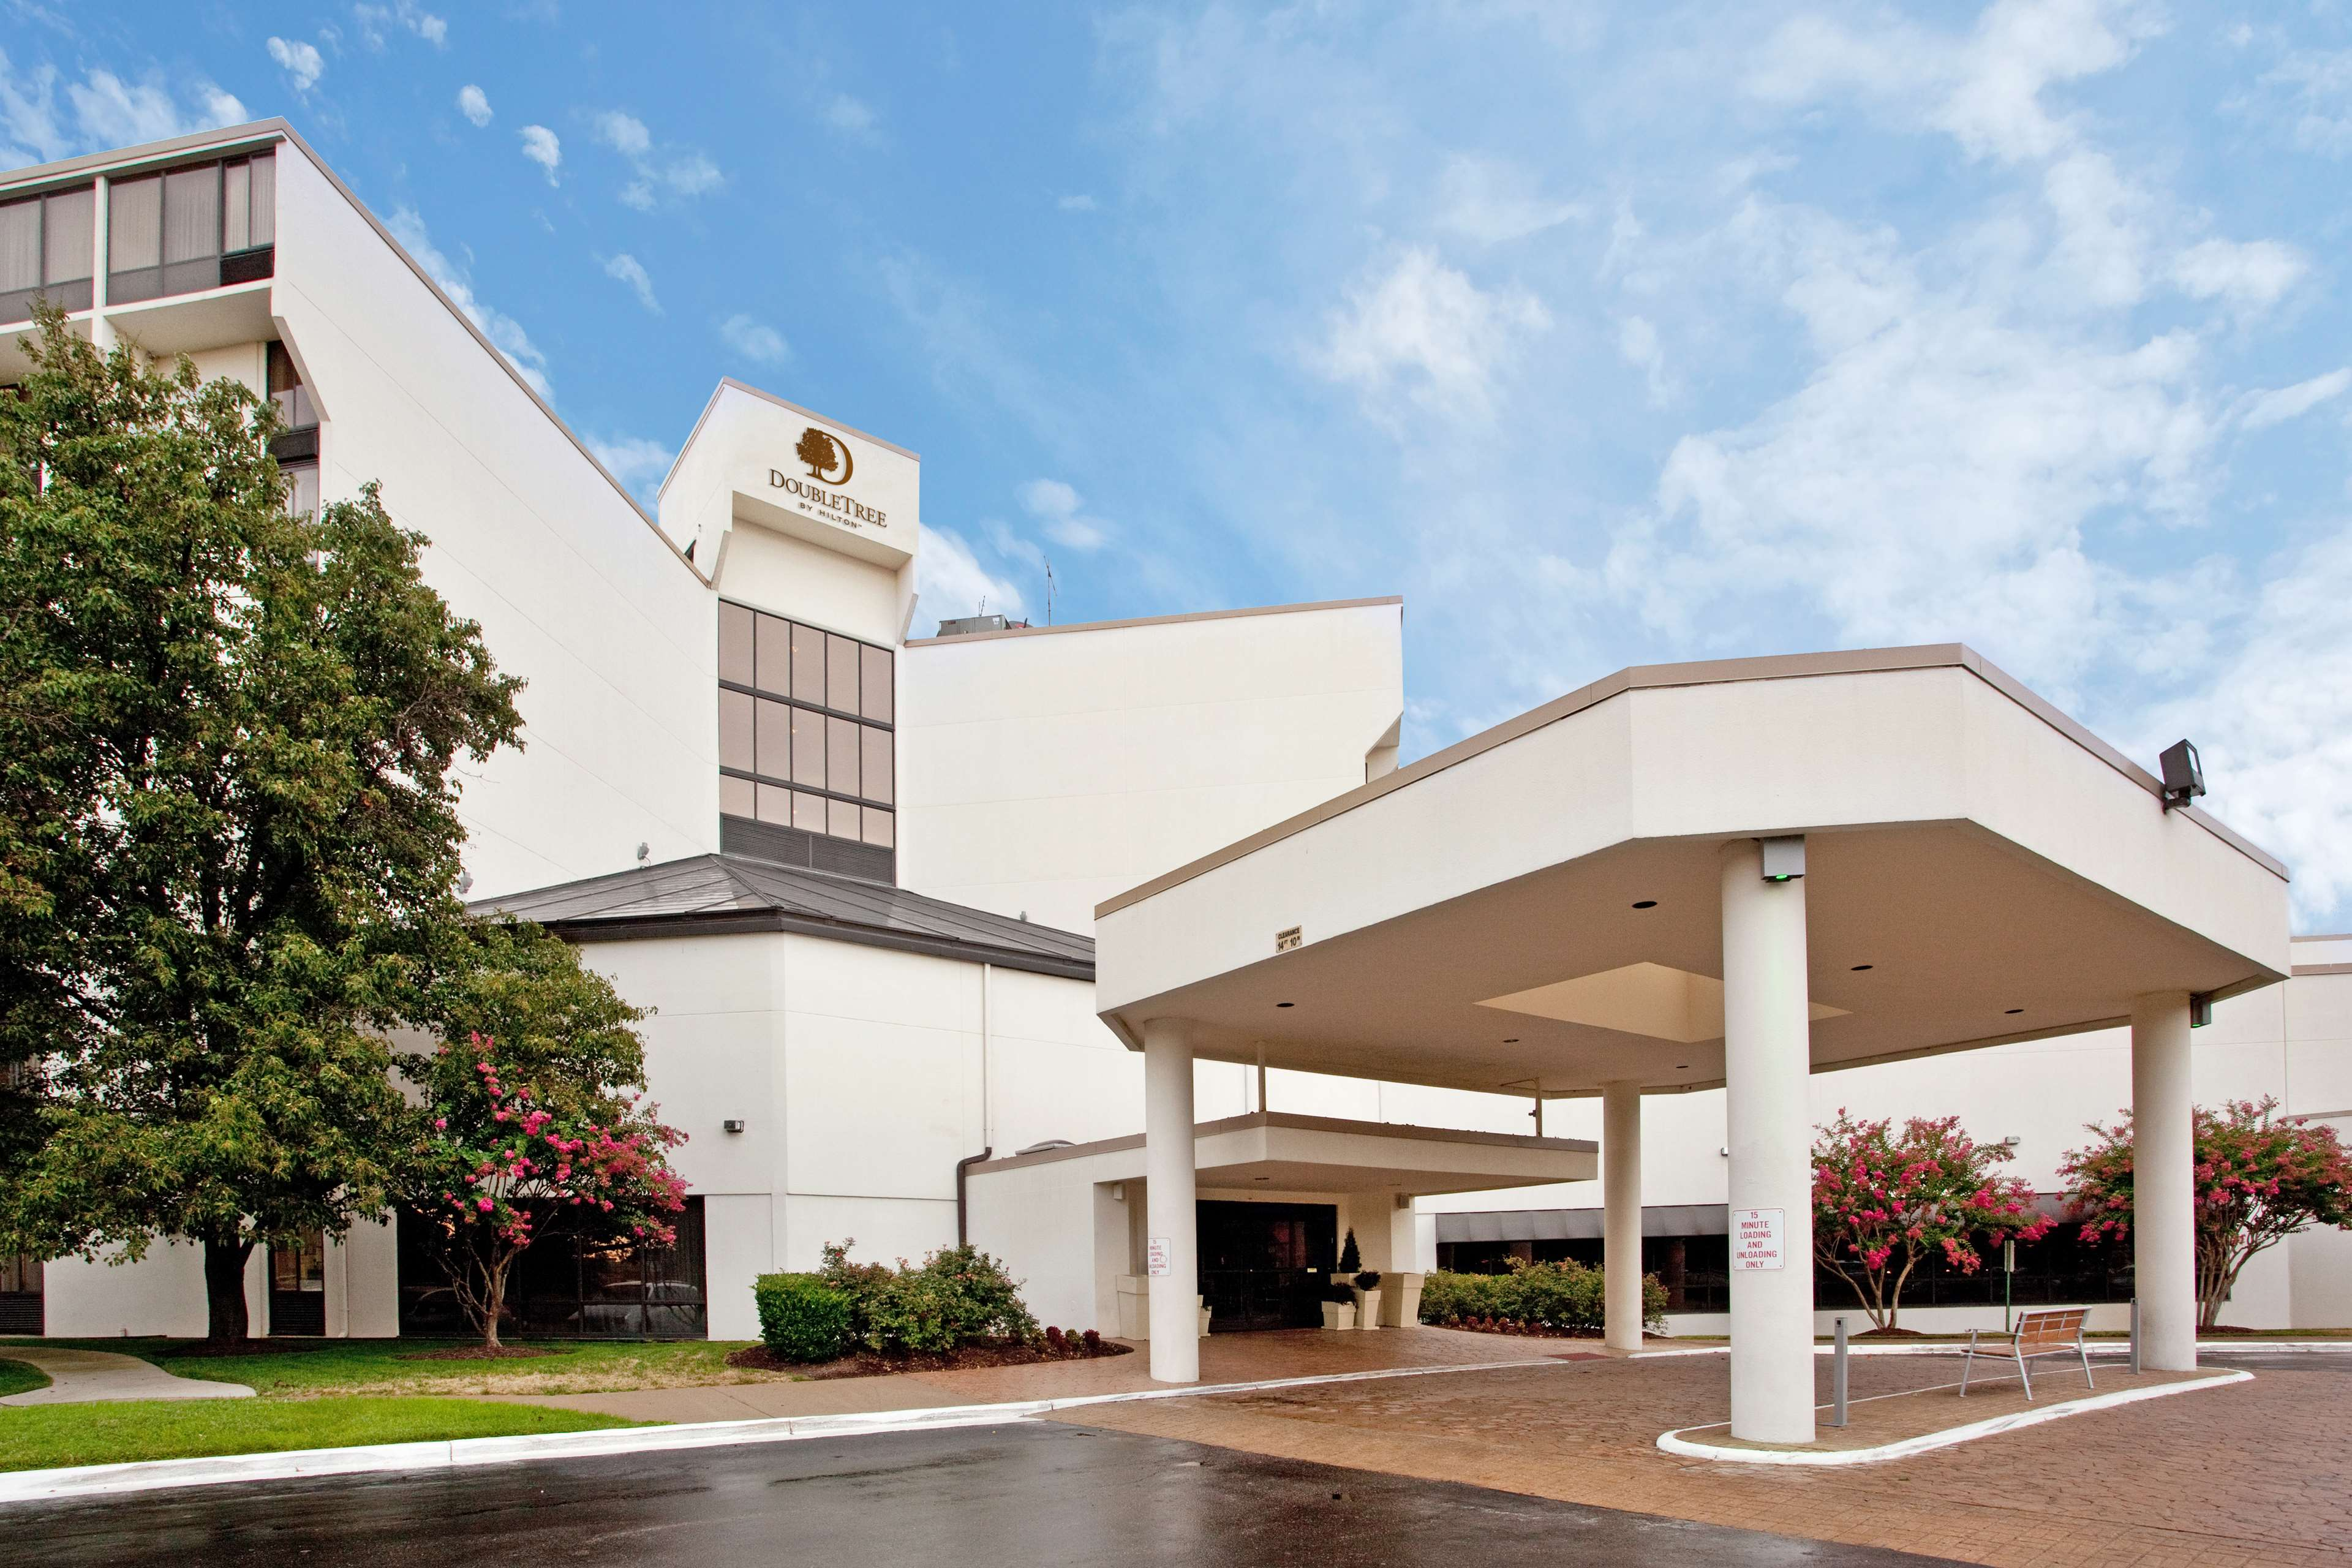 DoubleTree by Hilton Hotel Richmond - Midlothian image 0